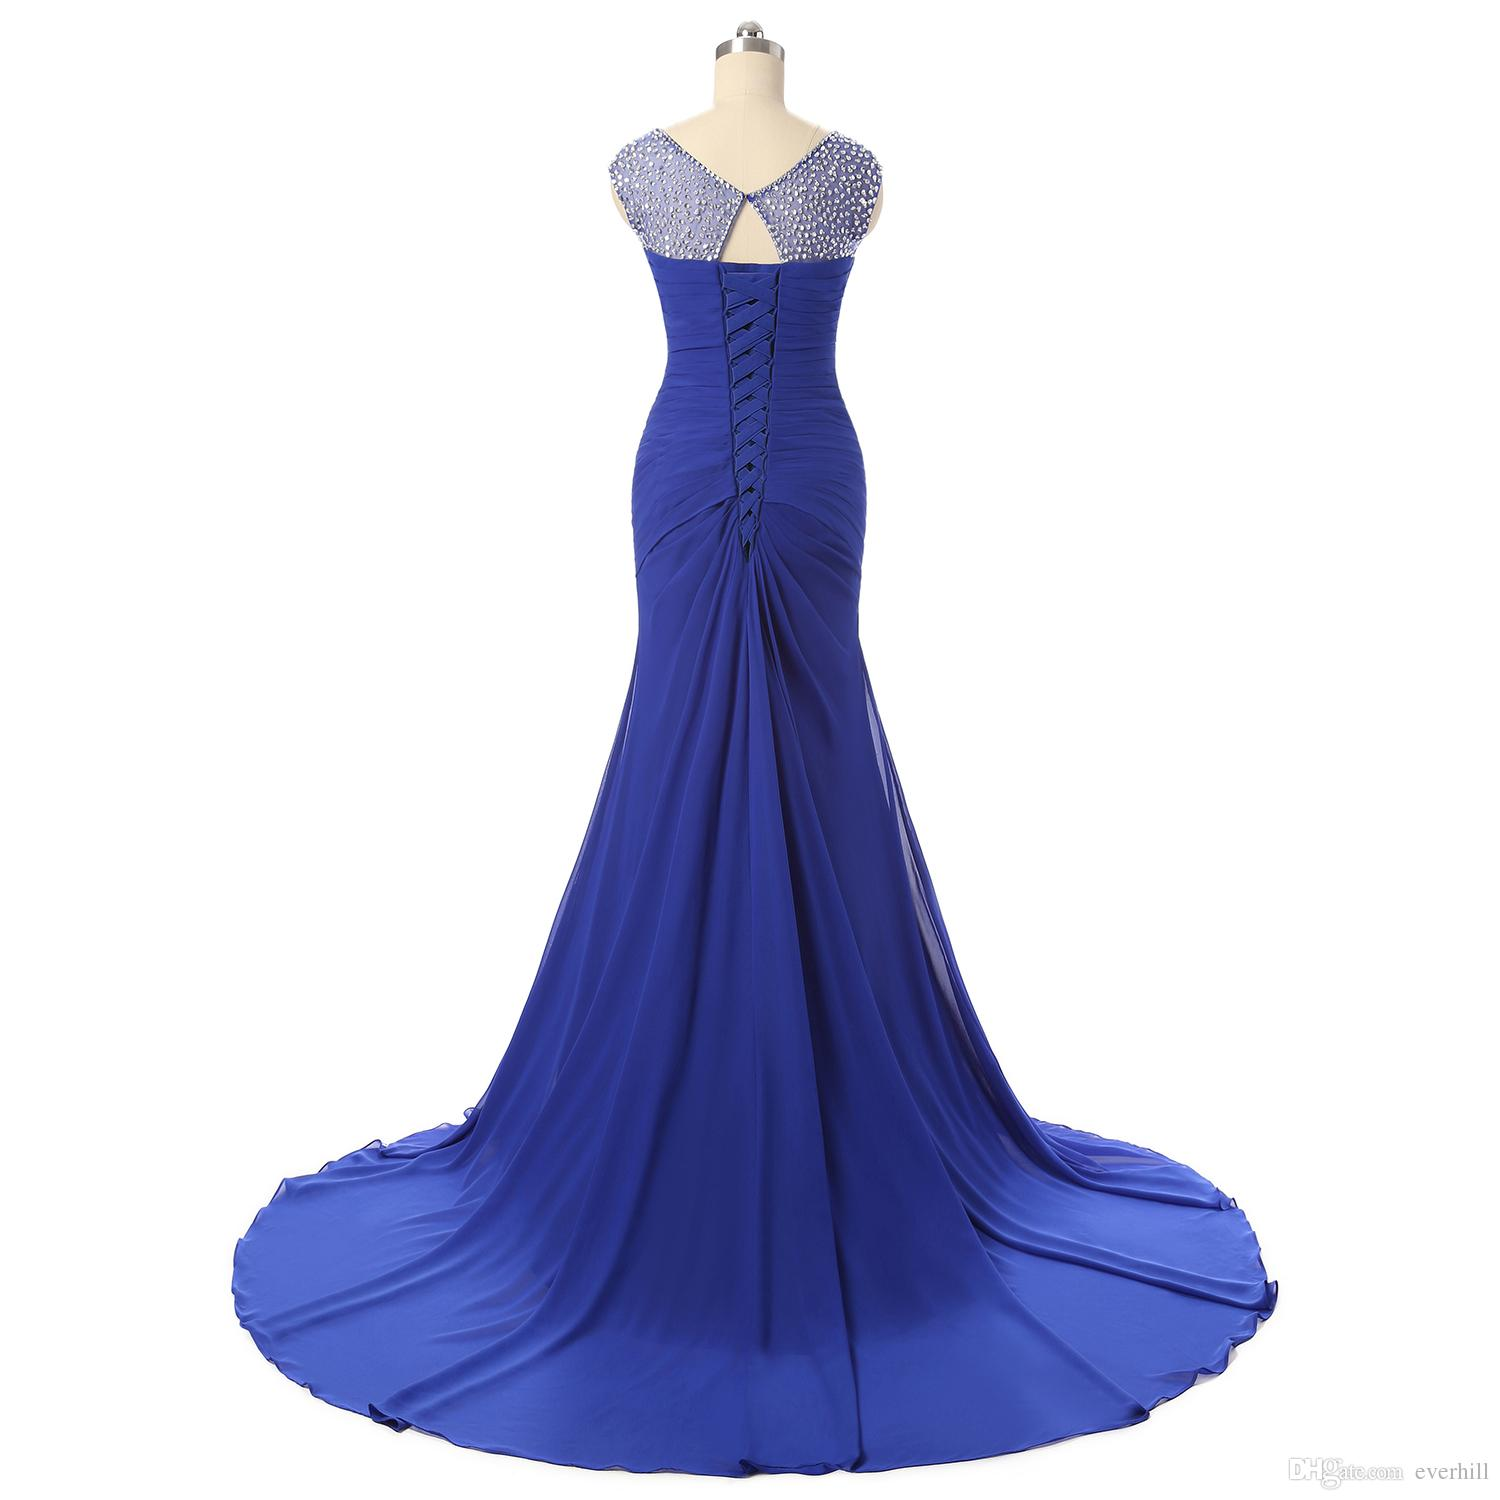 New Royal Blue Mermaid Long Evening Dresses For Women Crystal Beaded Court Train Prom Gowns Formal Dinner Party Dress Vestido Festa Longo